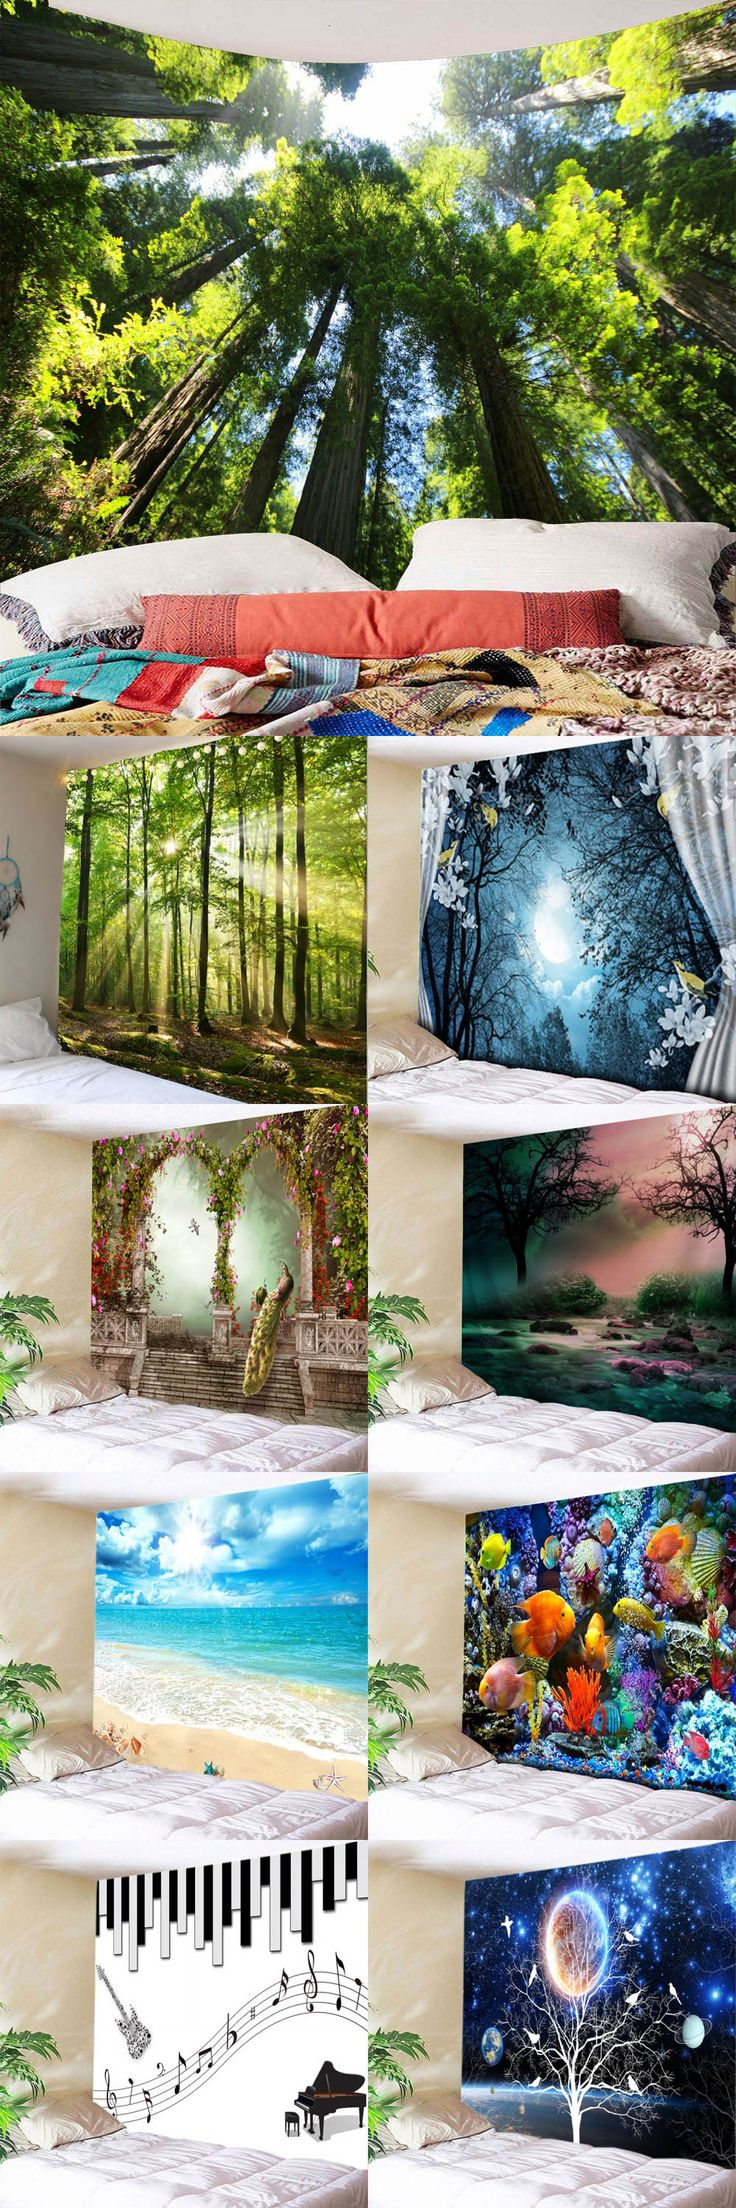 Up to 80% off, Rosewholesale Forest Sunlight Decorative Wall Hanging Tapestry - Green W91 Inch * L71 Inch   Rosewholesale,rosewholesale.com,rosewholesale home,rosewholesale home decor,wall tapestry,wall hanging,forest print,sunshine print,ocean print,beach print,Galaxy print,Musical Instrument Print,home decor,home decoration,wall,wallpaper,wall decor,wall decor living room   #rosewholesale #wallpaper #walldecor #homedecor